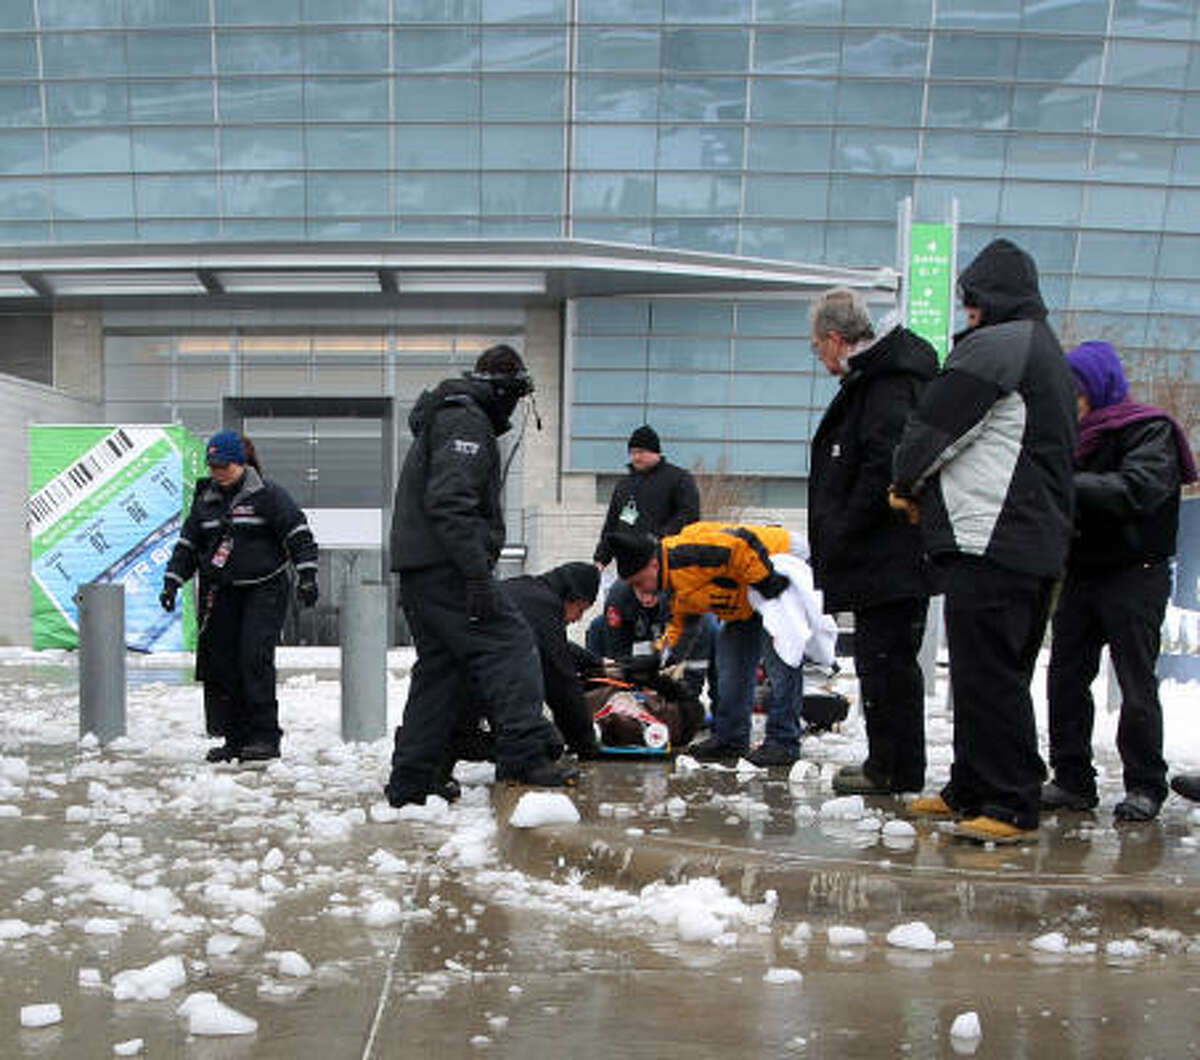 Medical personnel tend to a person injured by ice that fell off Cowboys Stadium.